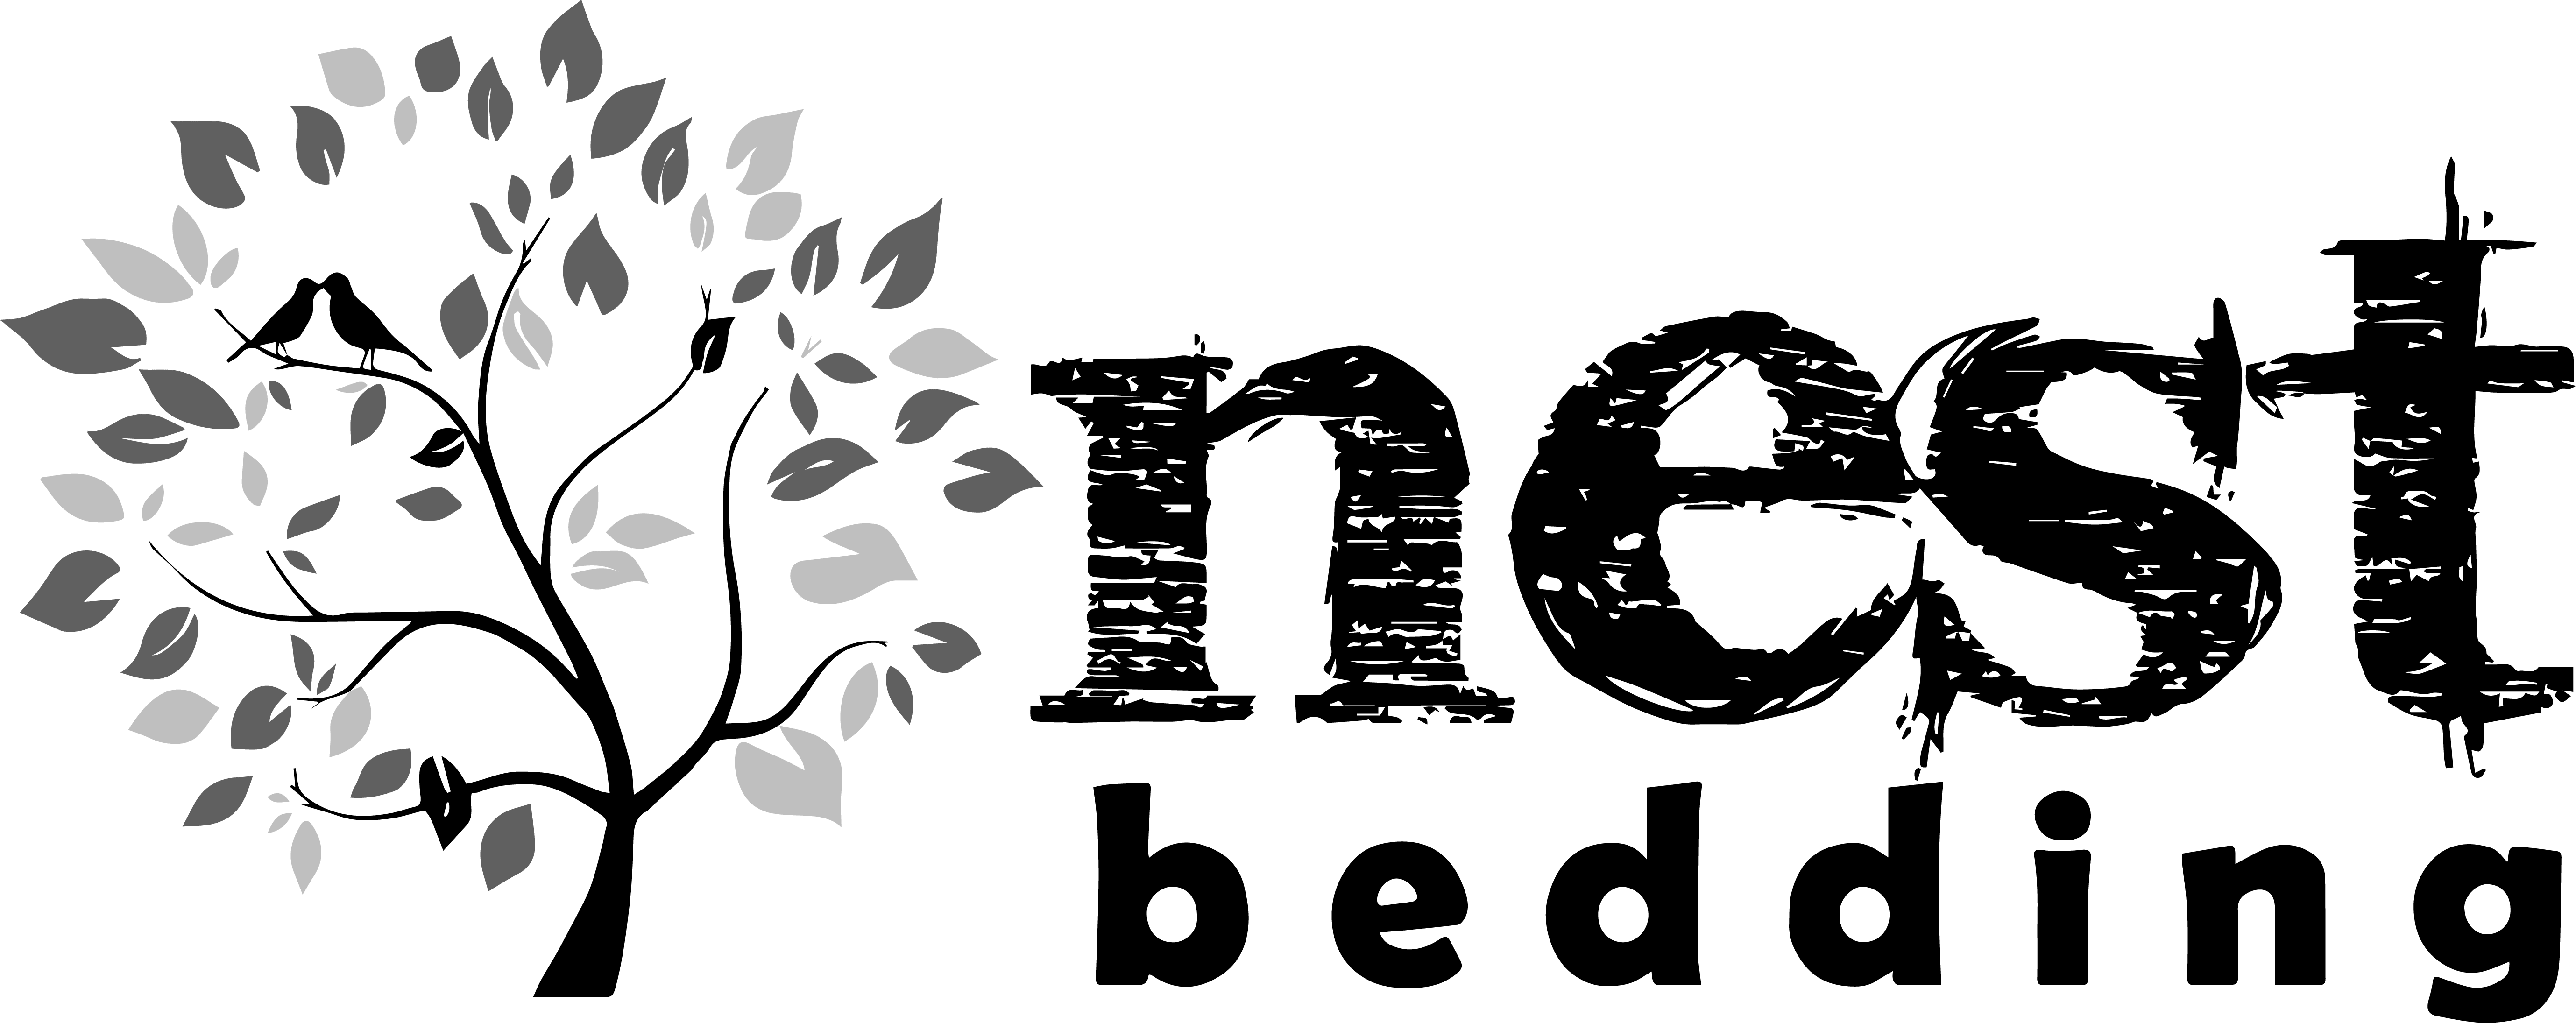 Nest Bedding Hybrid Latex logo